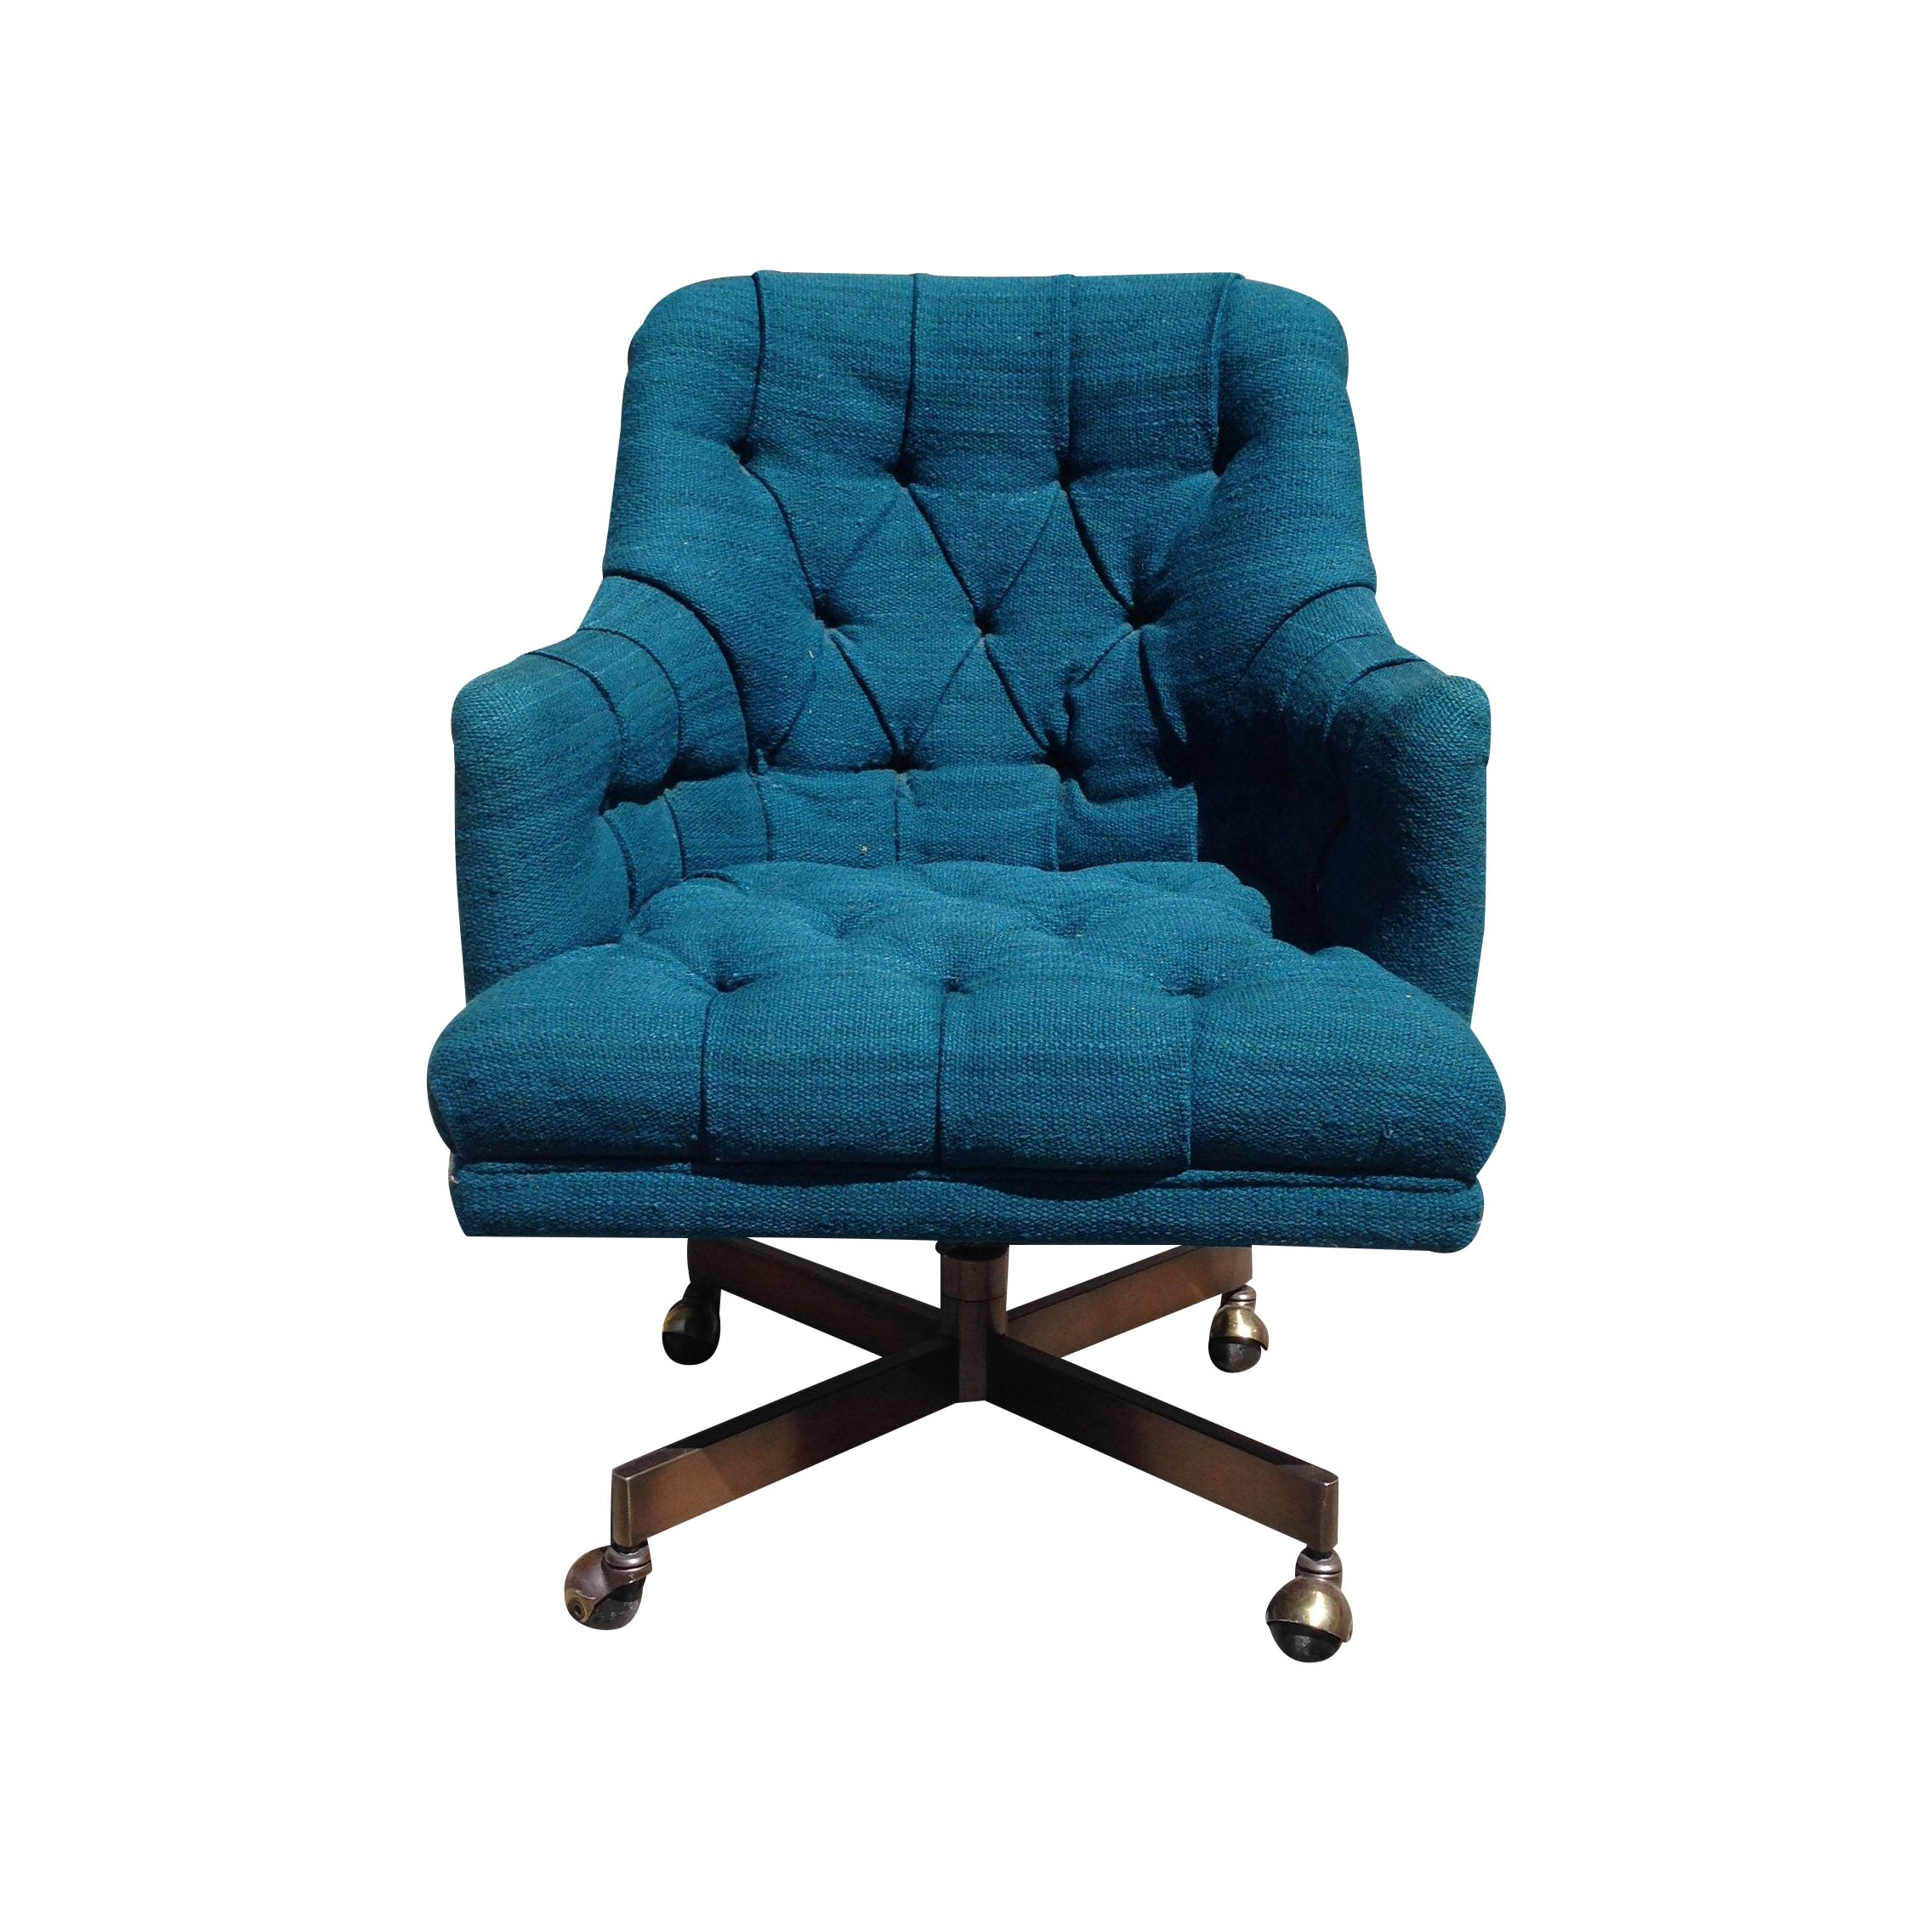 Oversized Teal Tufted Office Chair  Chairish